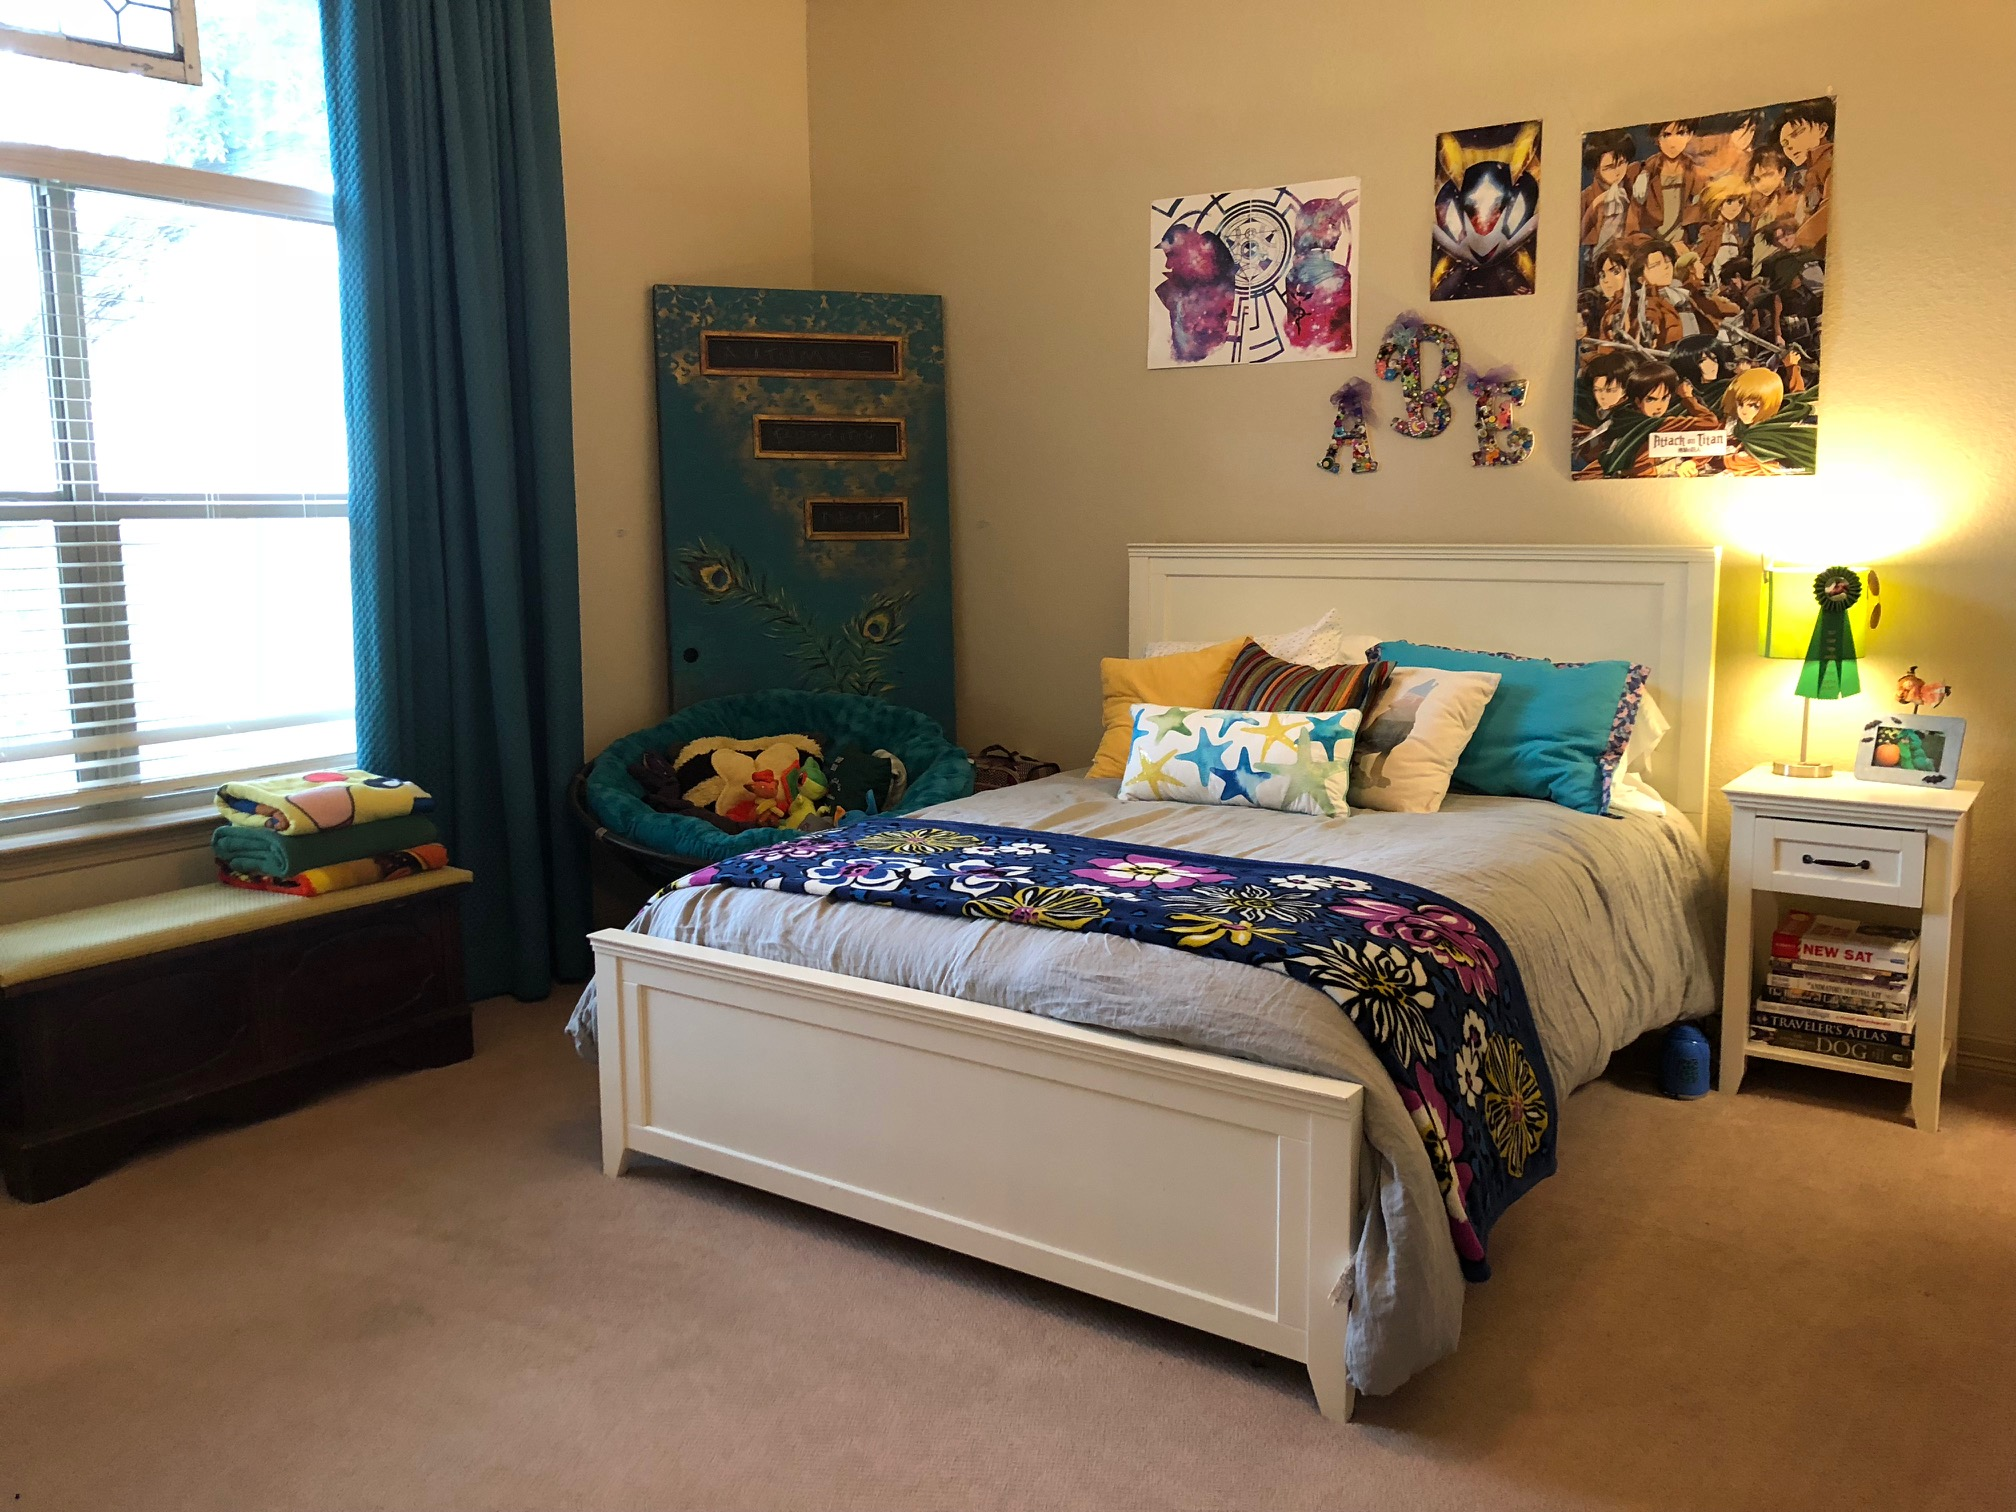 AFTER - One long Saturday later and we didn't want to leave this stunning bedroom. Her favorite part was having all her art supplies in one place!